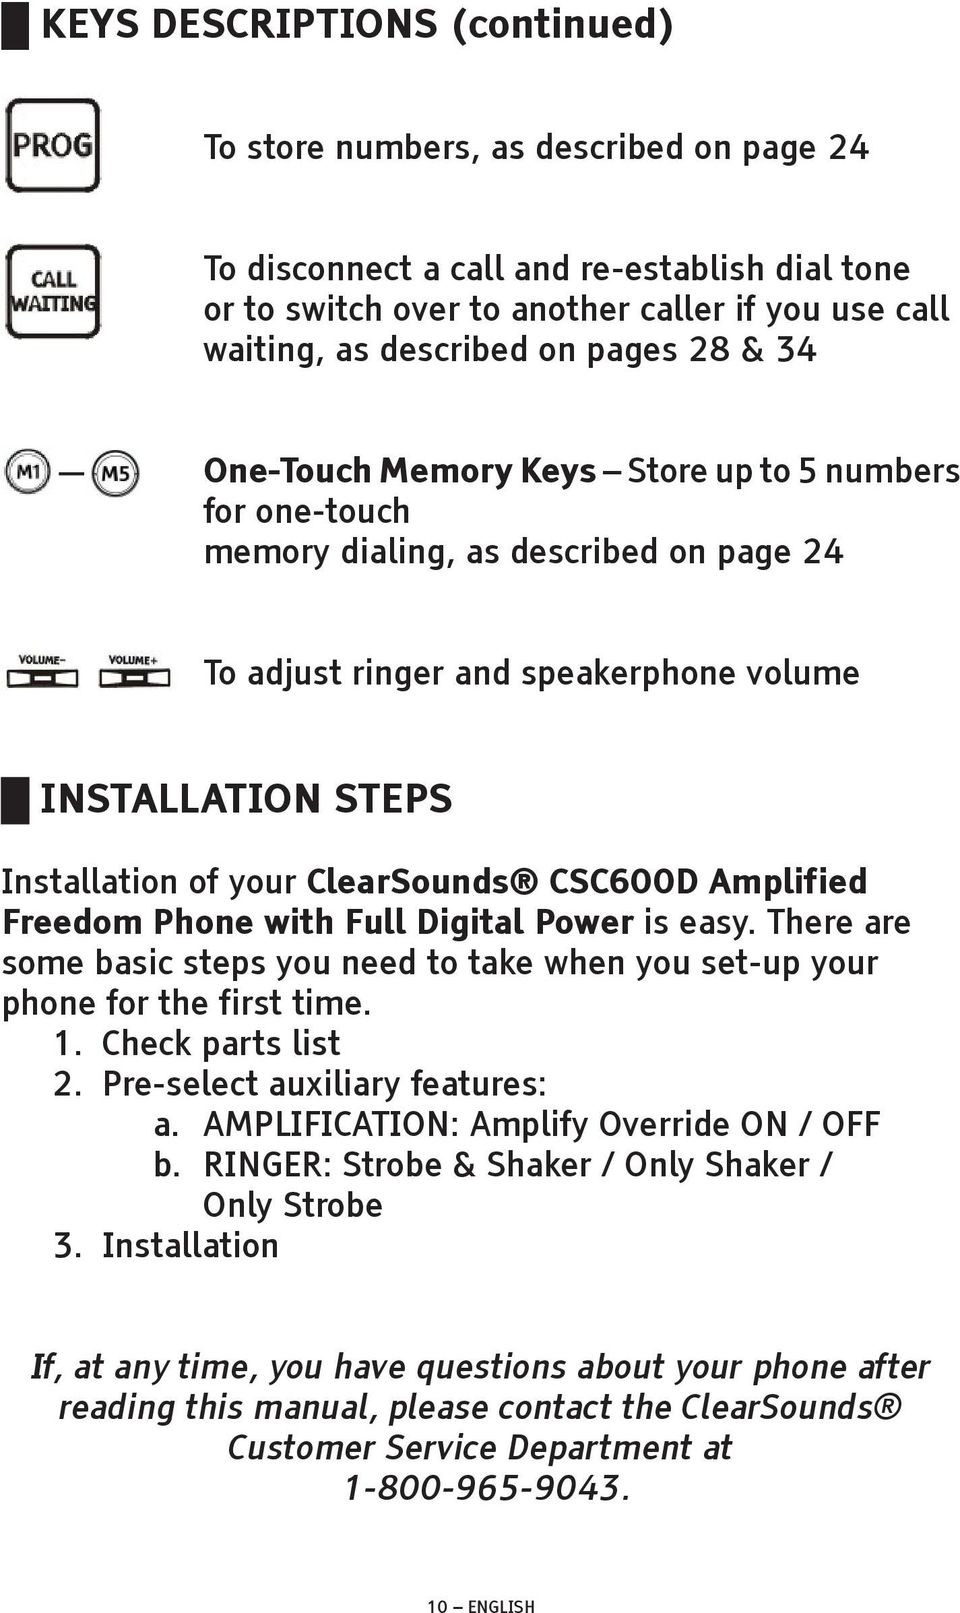 ClearSounds CSC600D Amplified Freedom Phone with Full Digital Power is easy. There are some basic steps you need to take when you set-up your phone for the first time. 1. Check parts list 2.